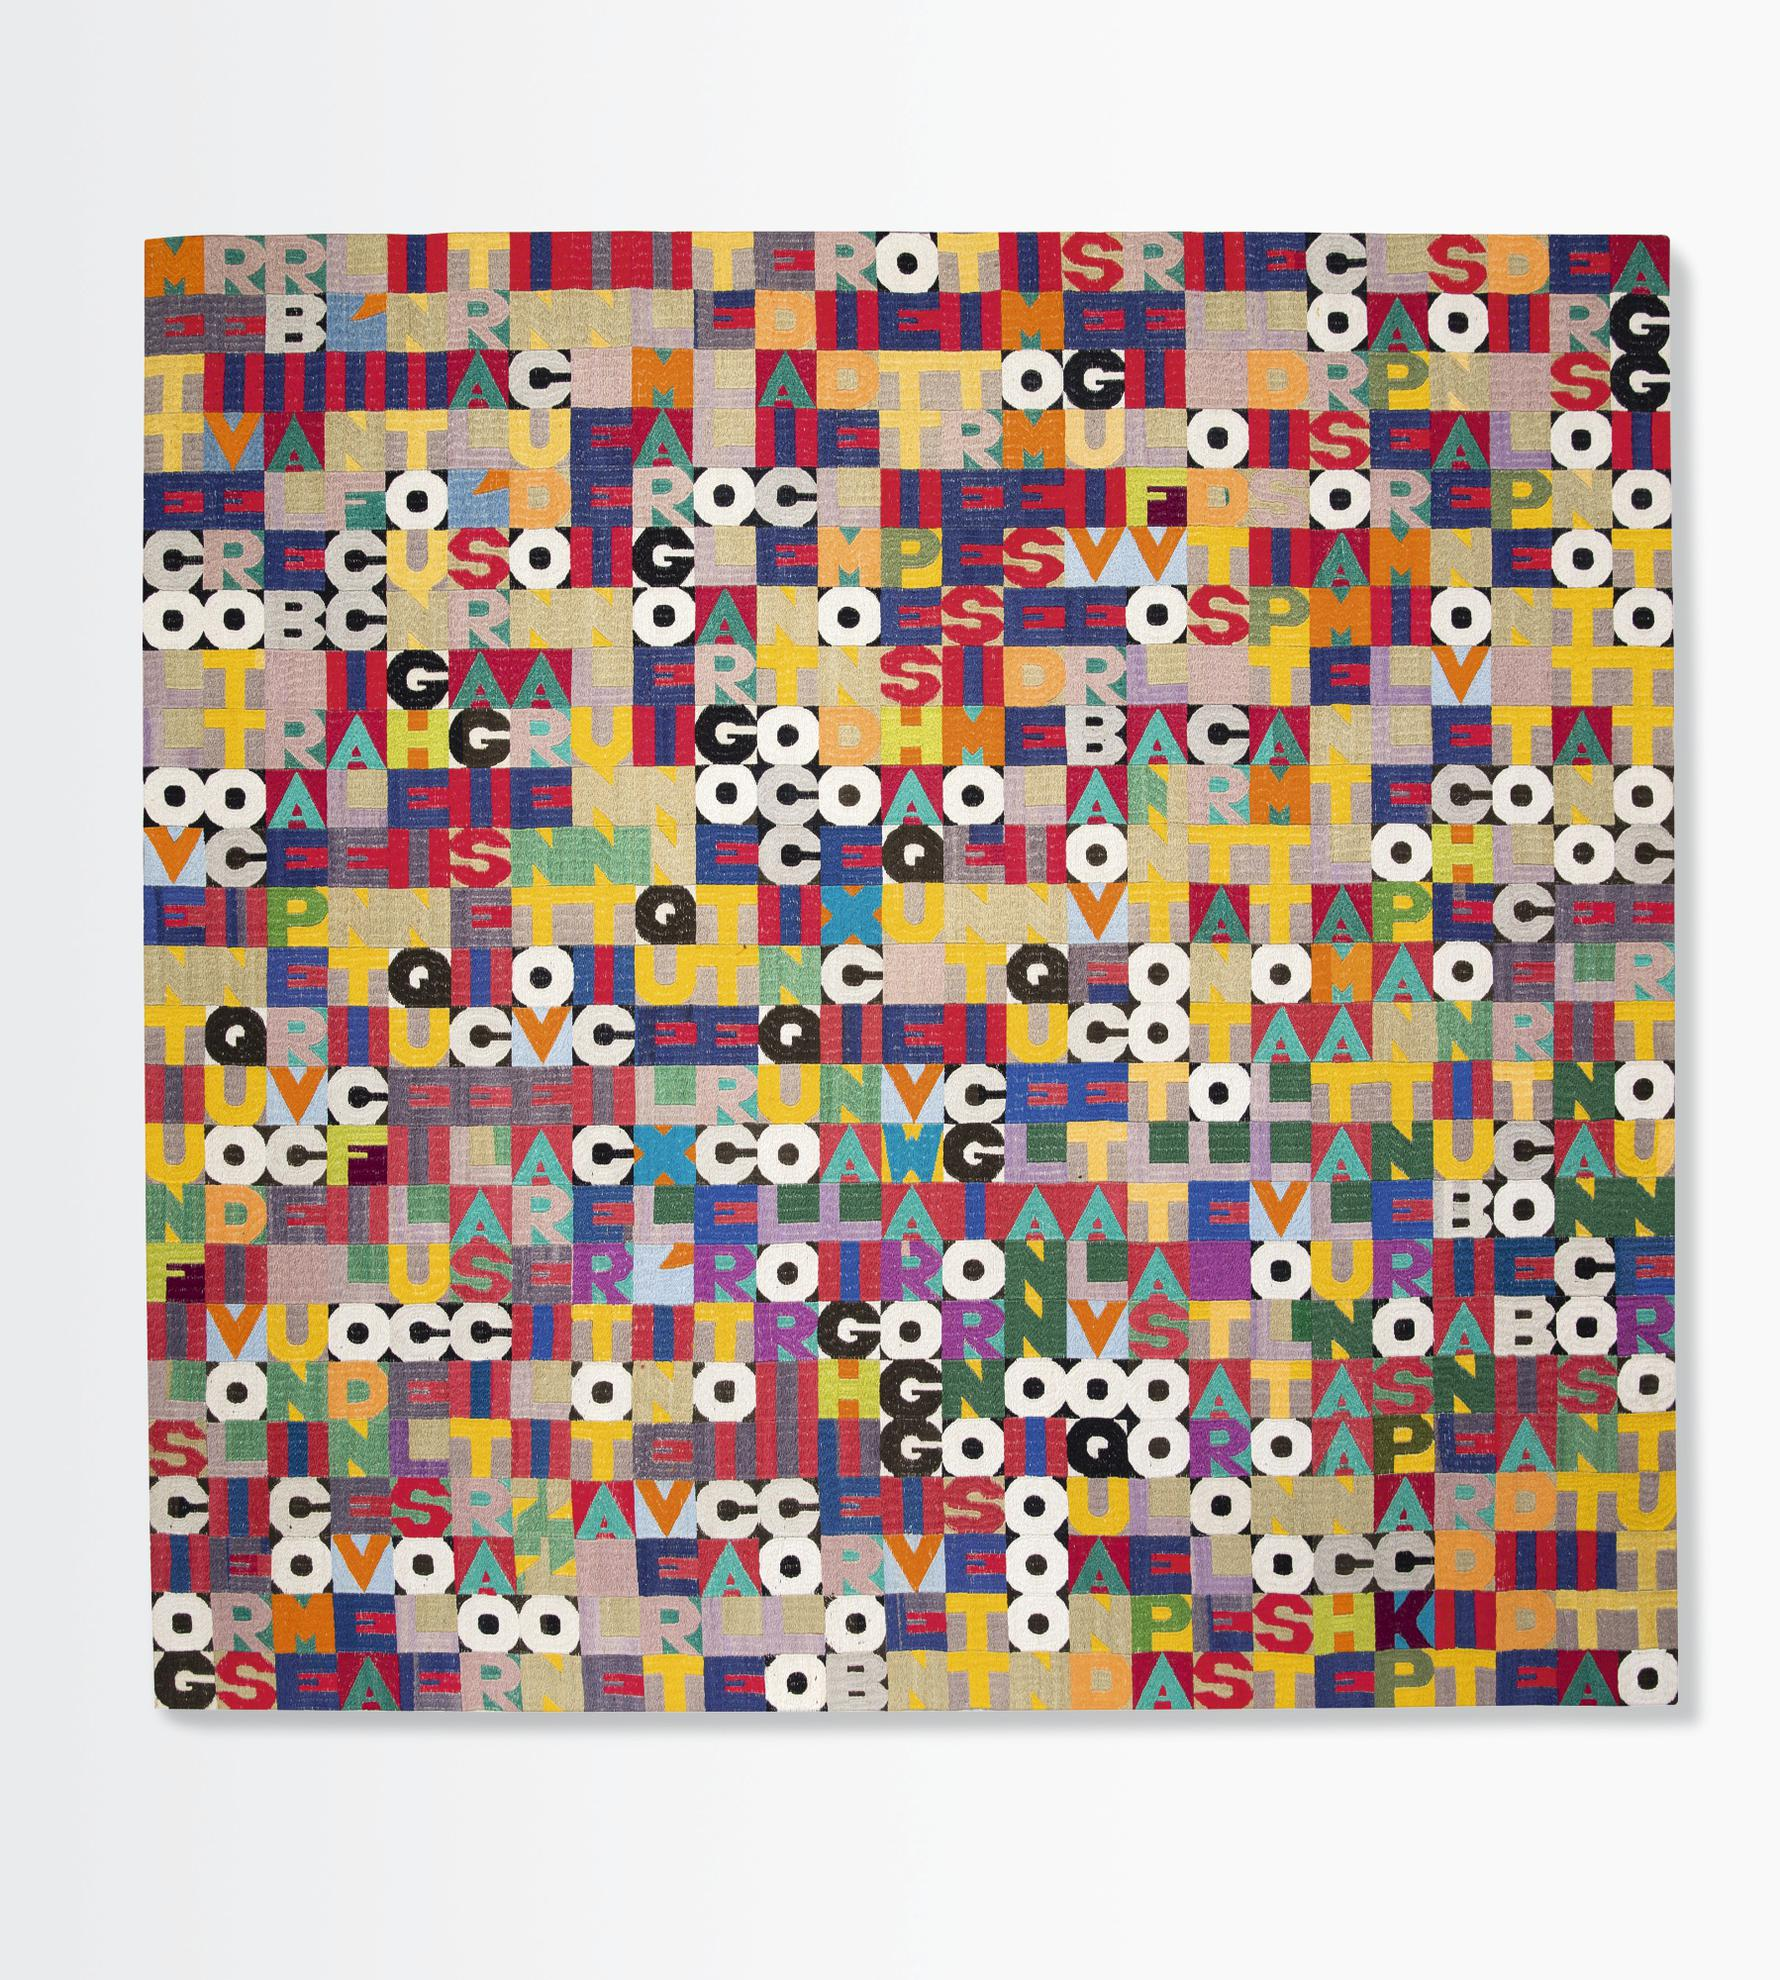 Alighiero Boetti-Untitled (July 23, 1988)-1988